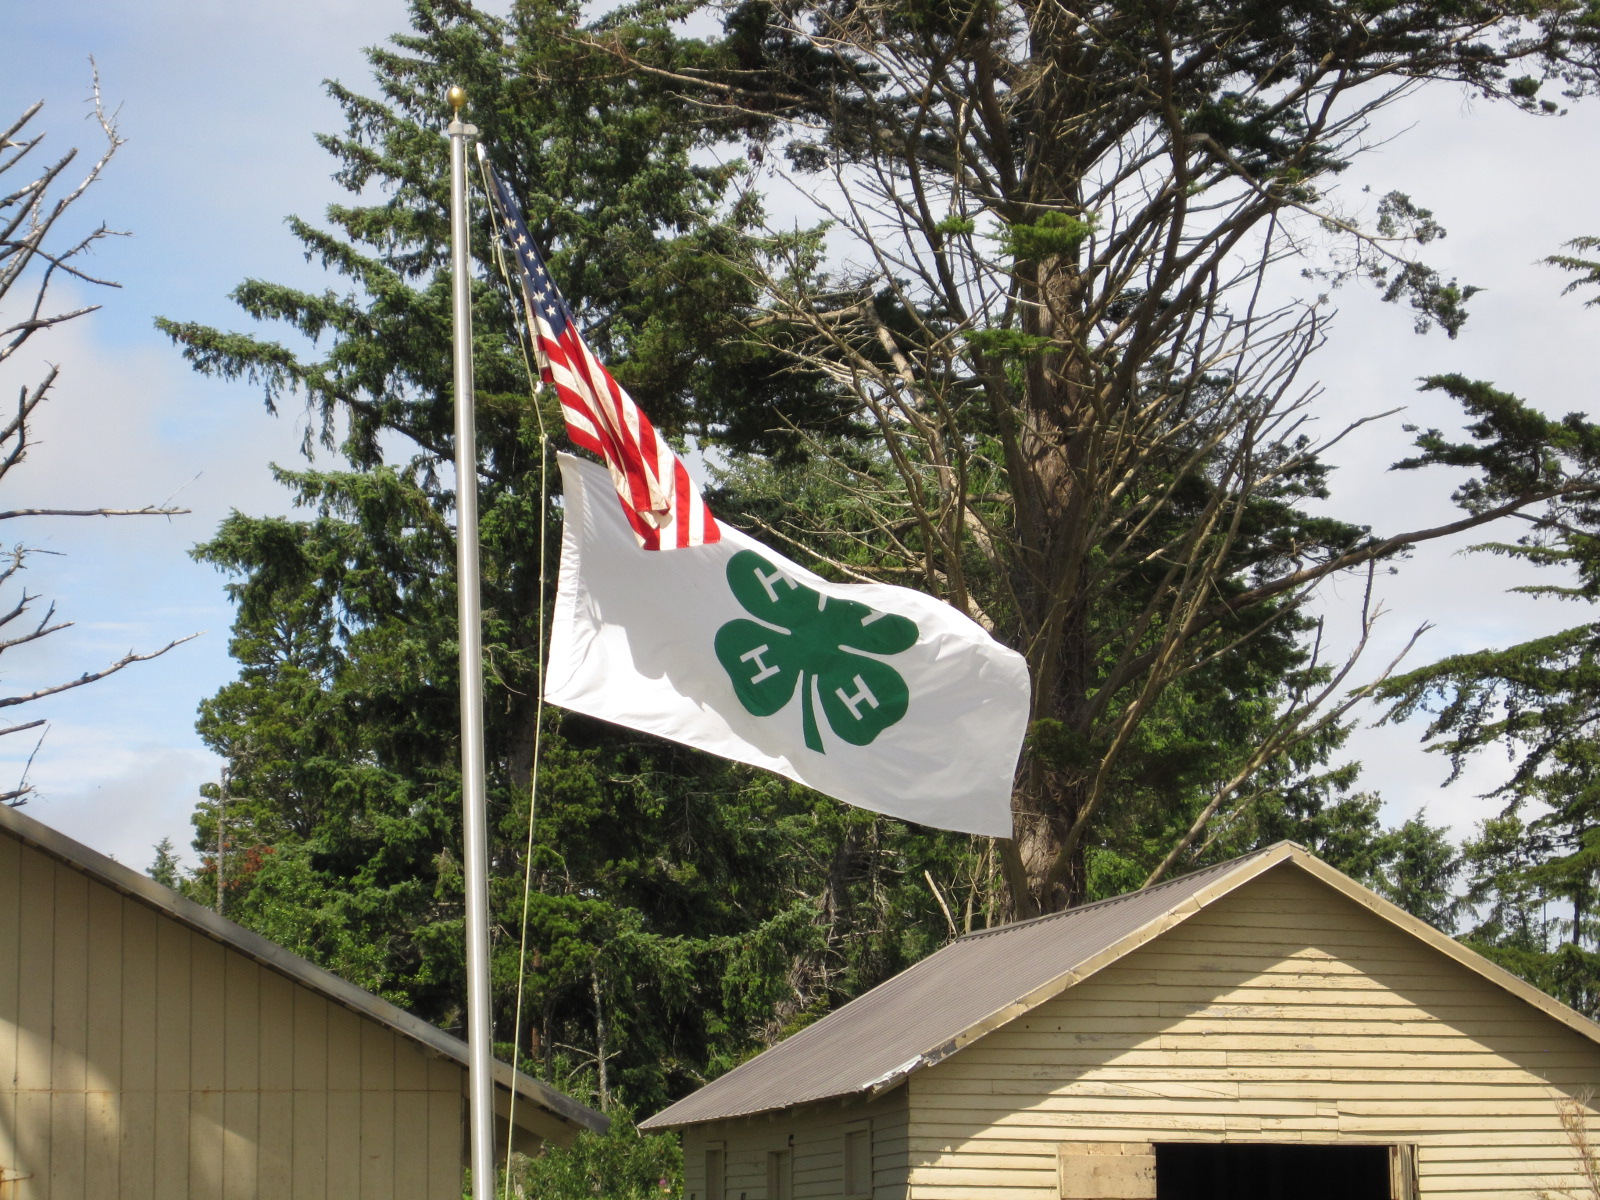 American and 4-H flag on pole at camp